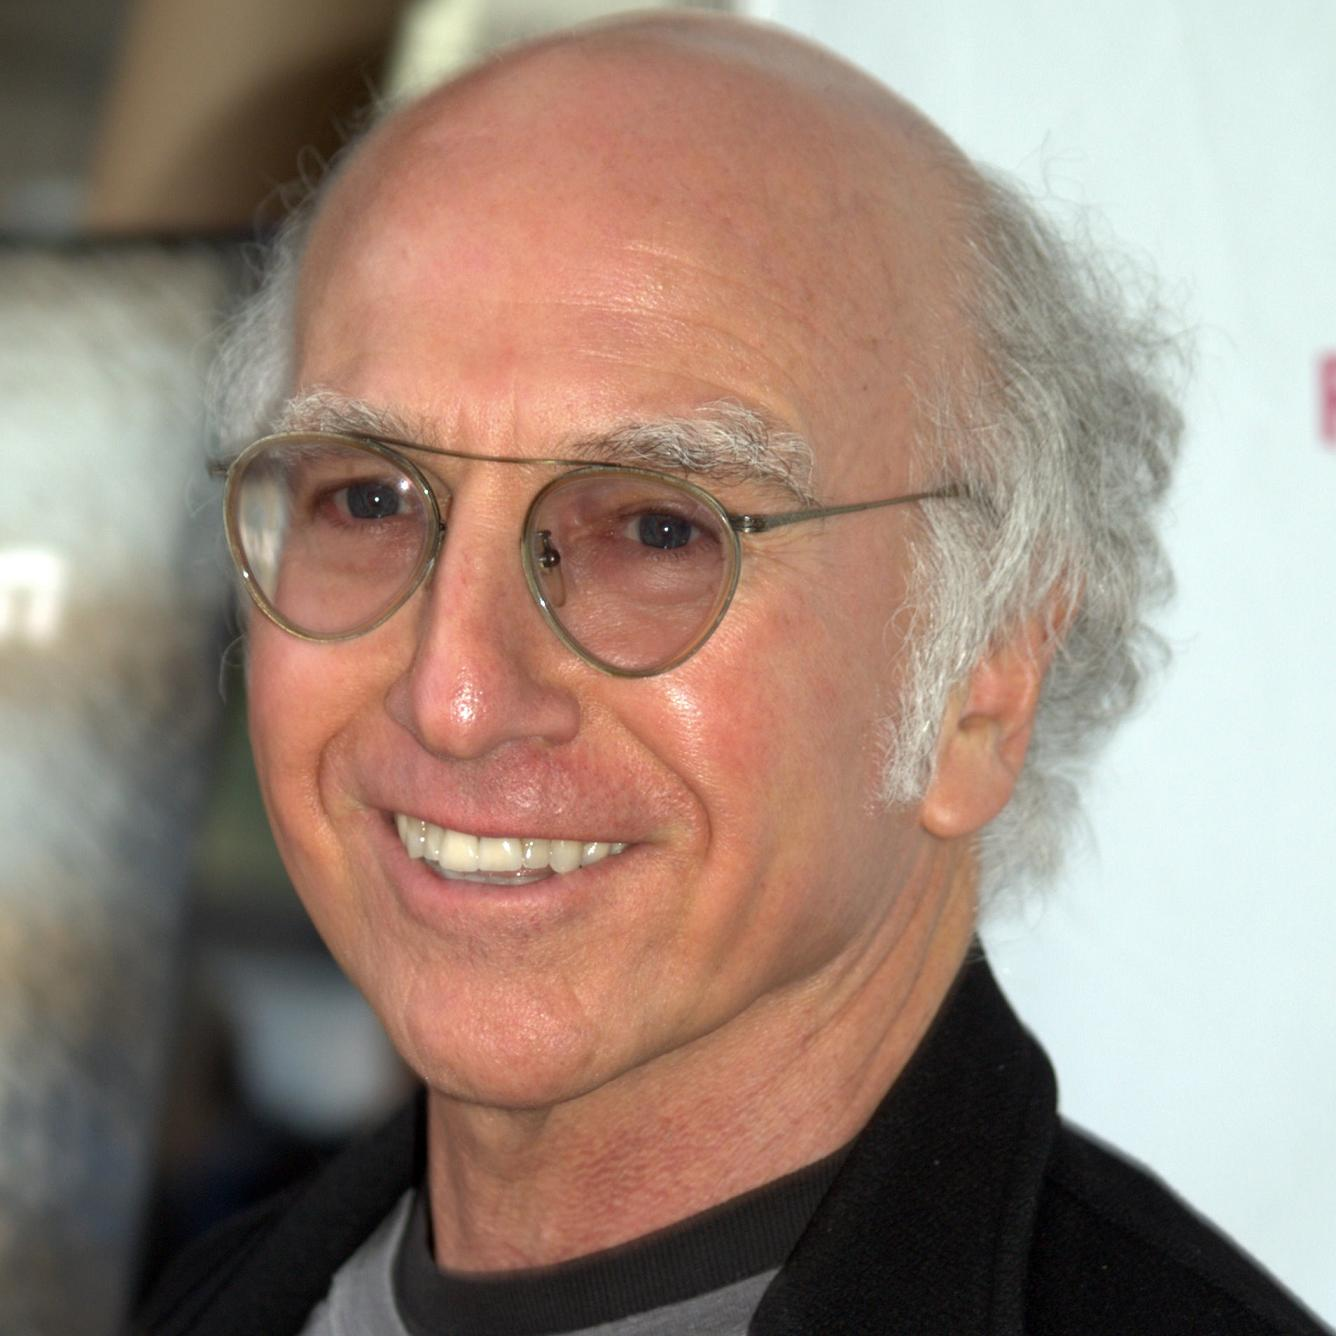 Larry David Bio, Net Worth, Facts